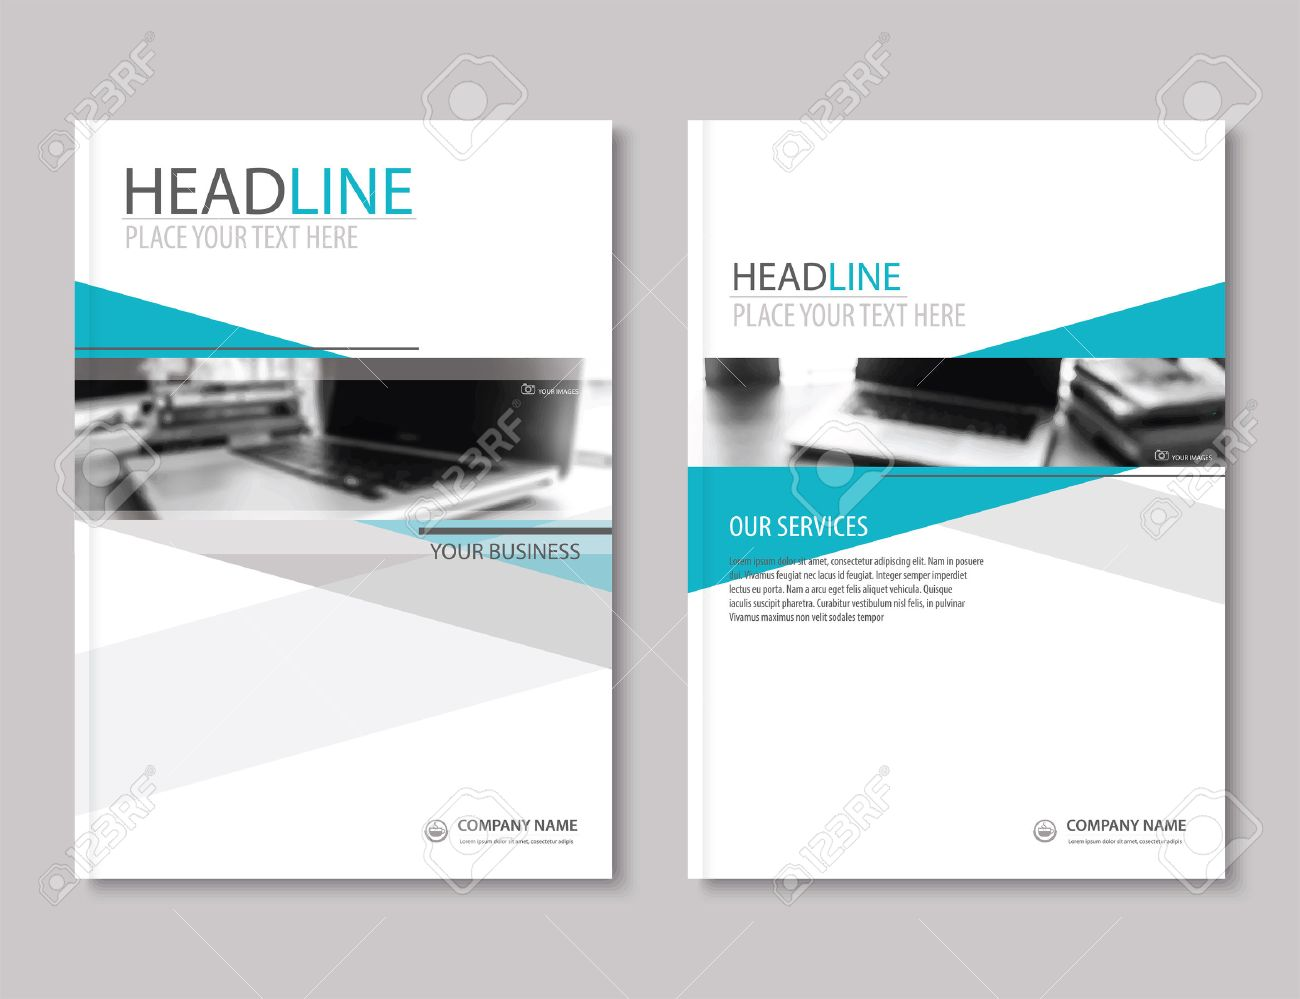 Annual Report Brochure Flyer Design Template Company Profile – Company Profile